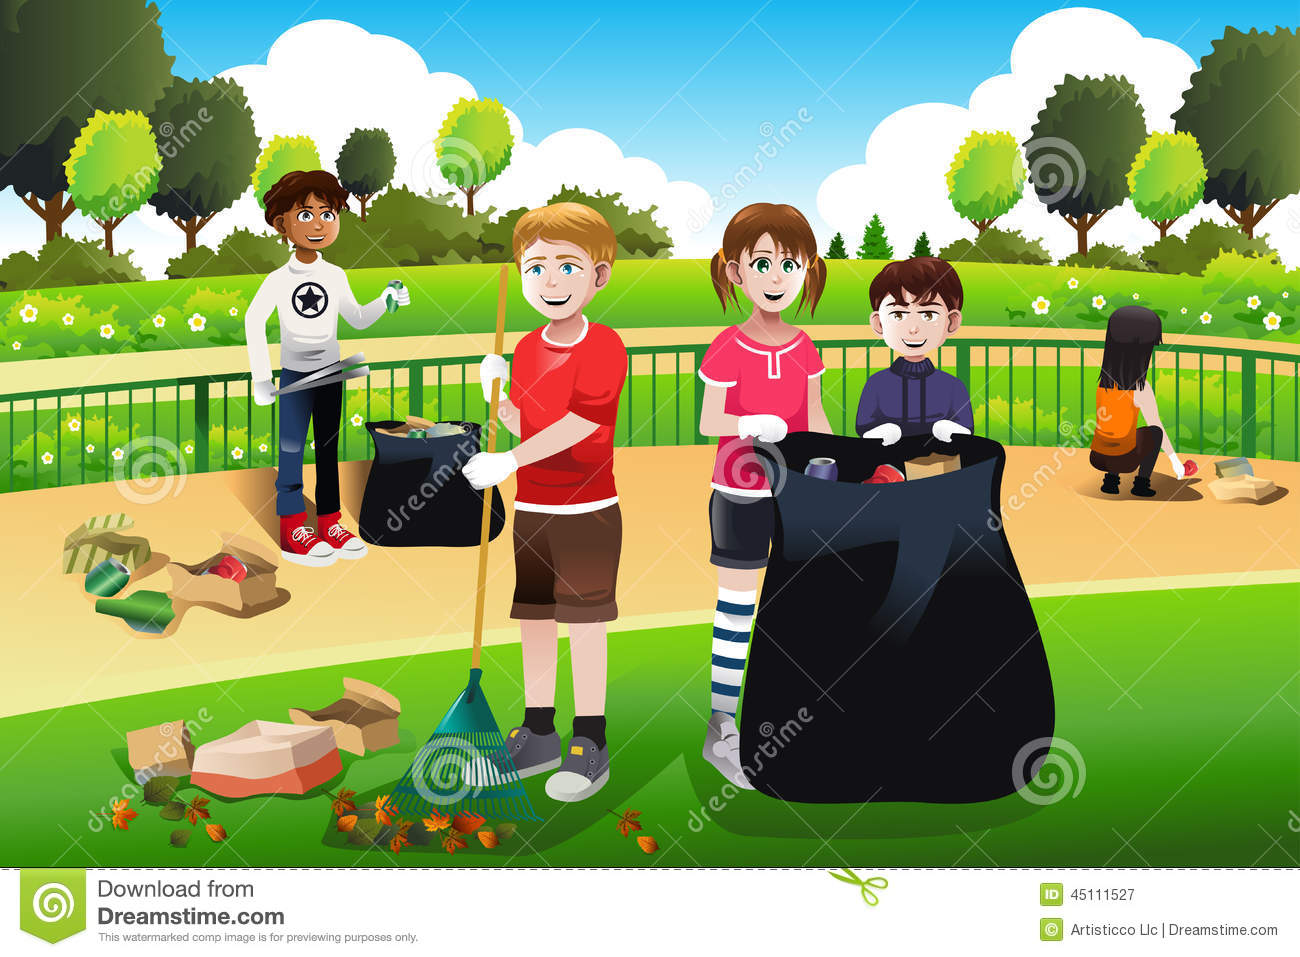 Kids Volunteering Cleaning Up The Park Stock Vector - Illustration